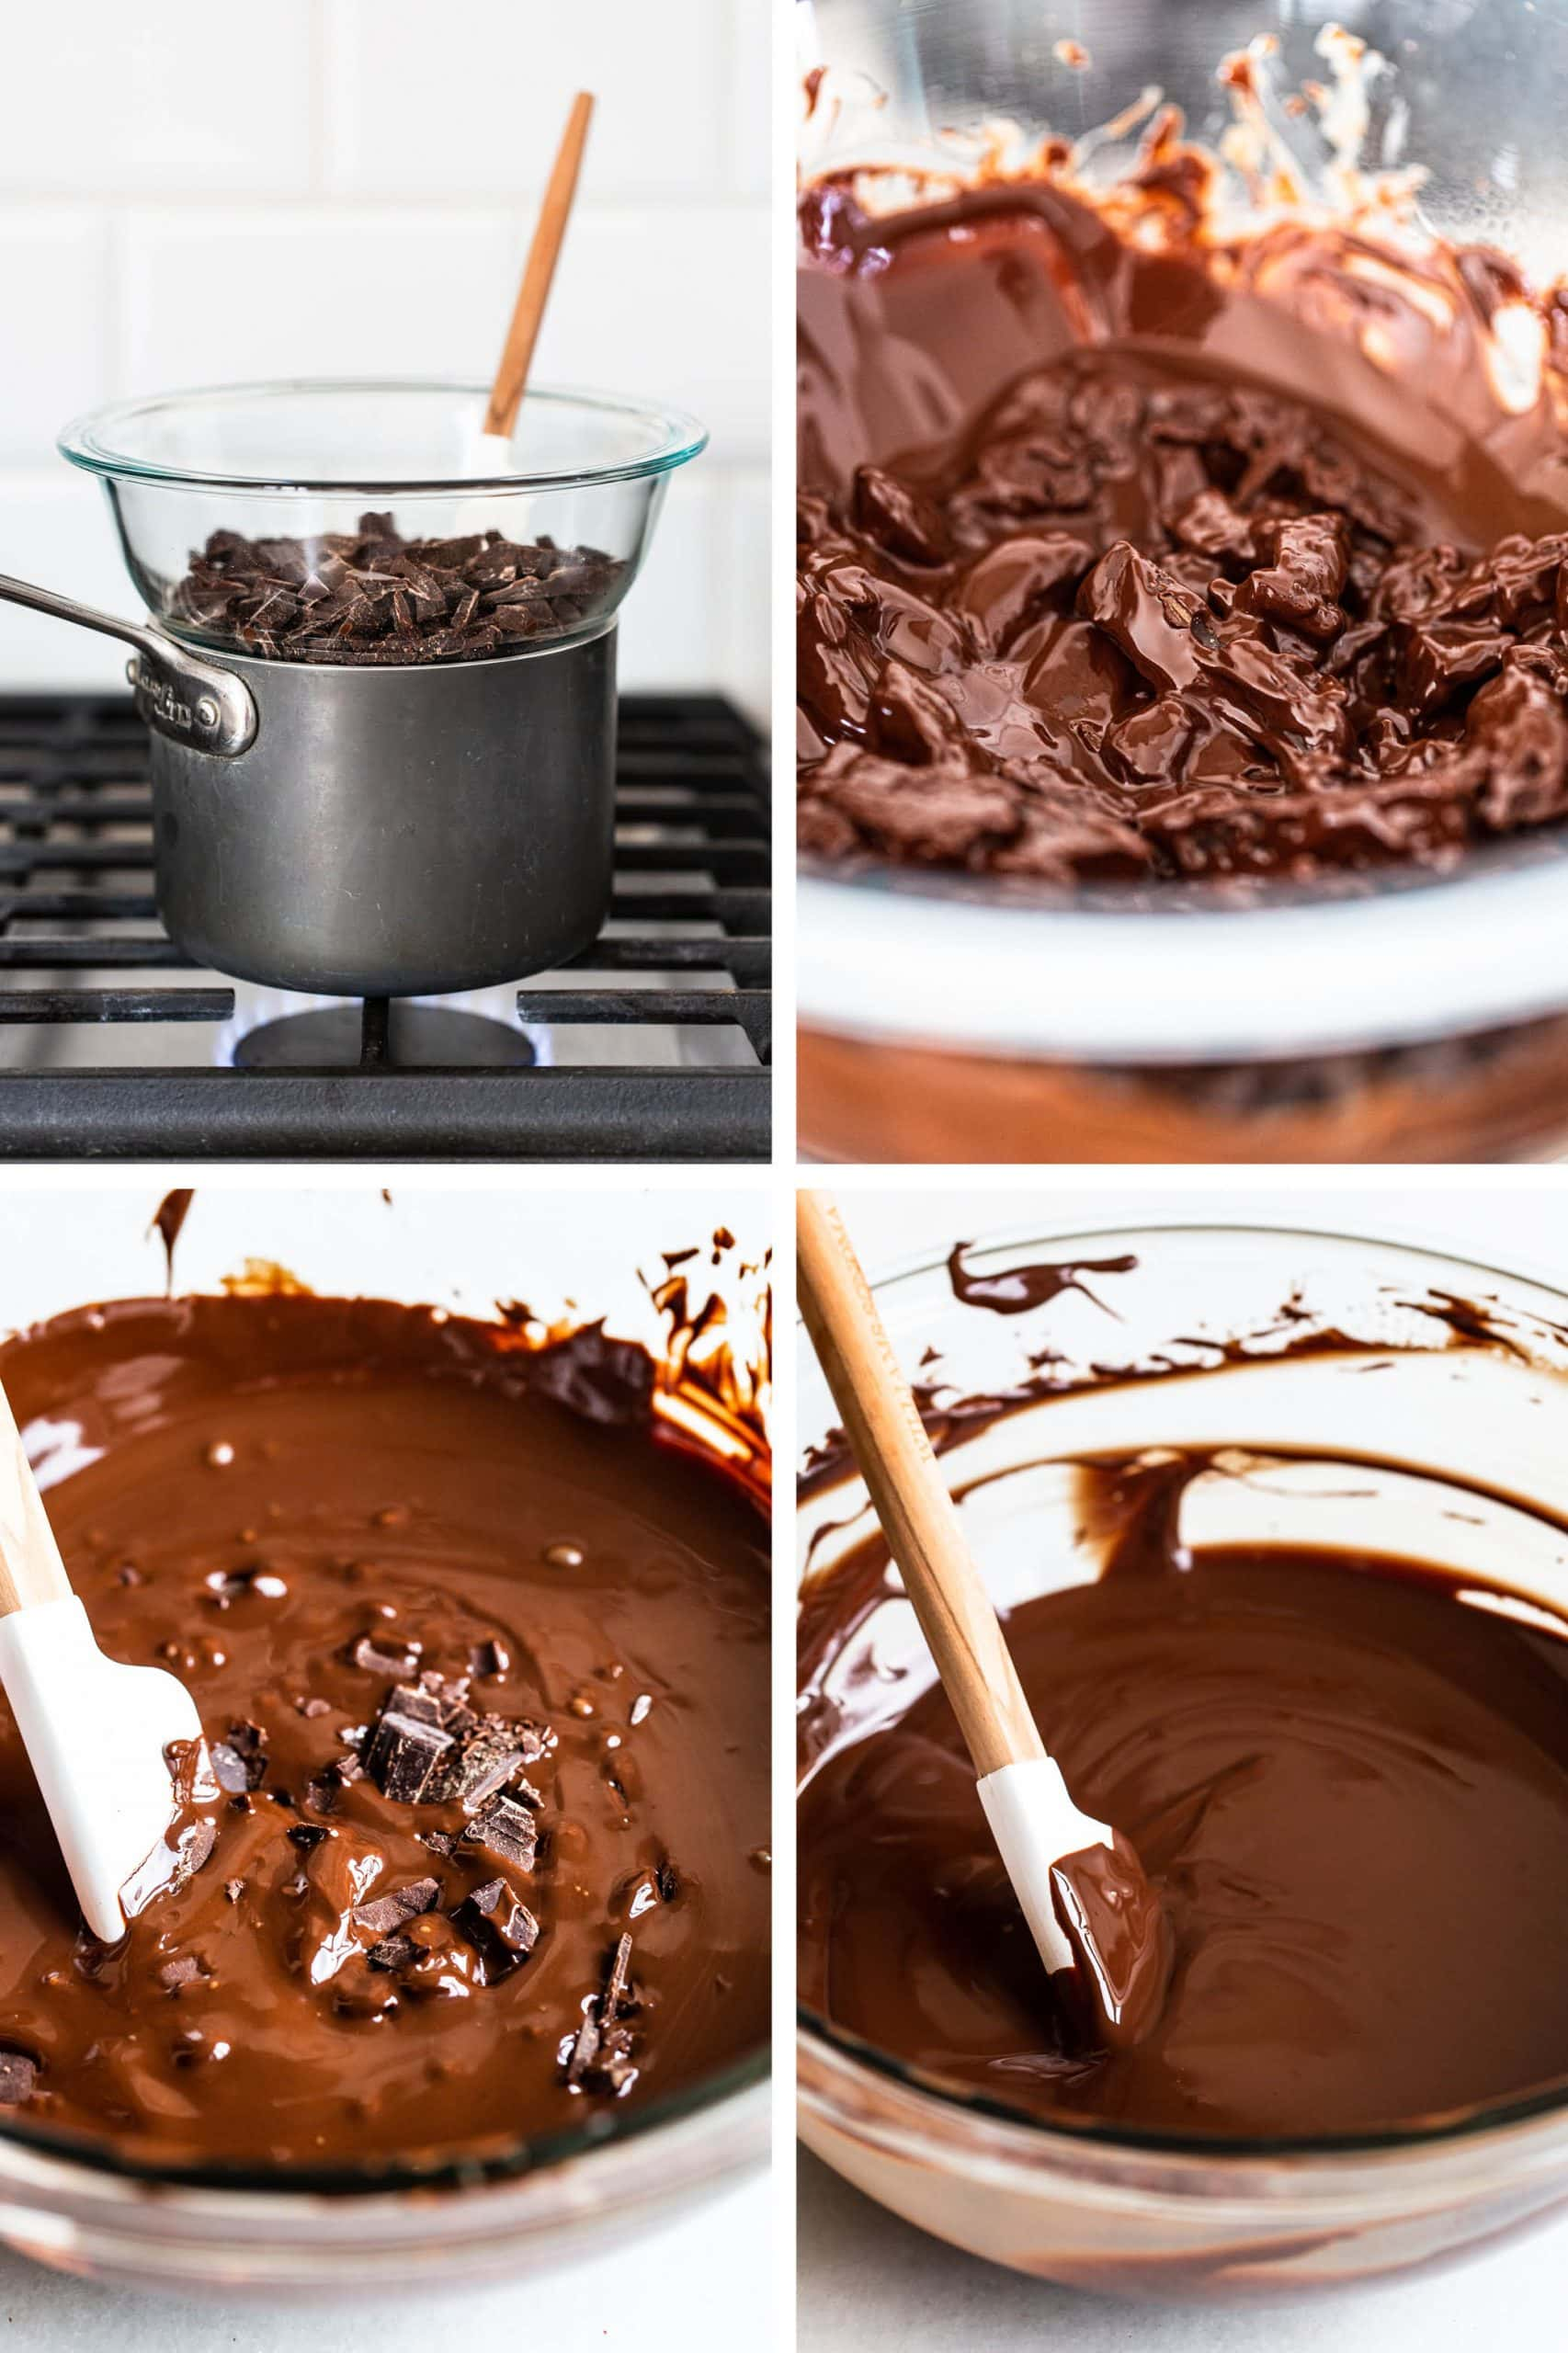 step by step photos of how to temper chocolate